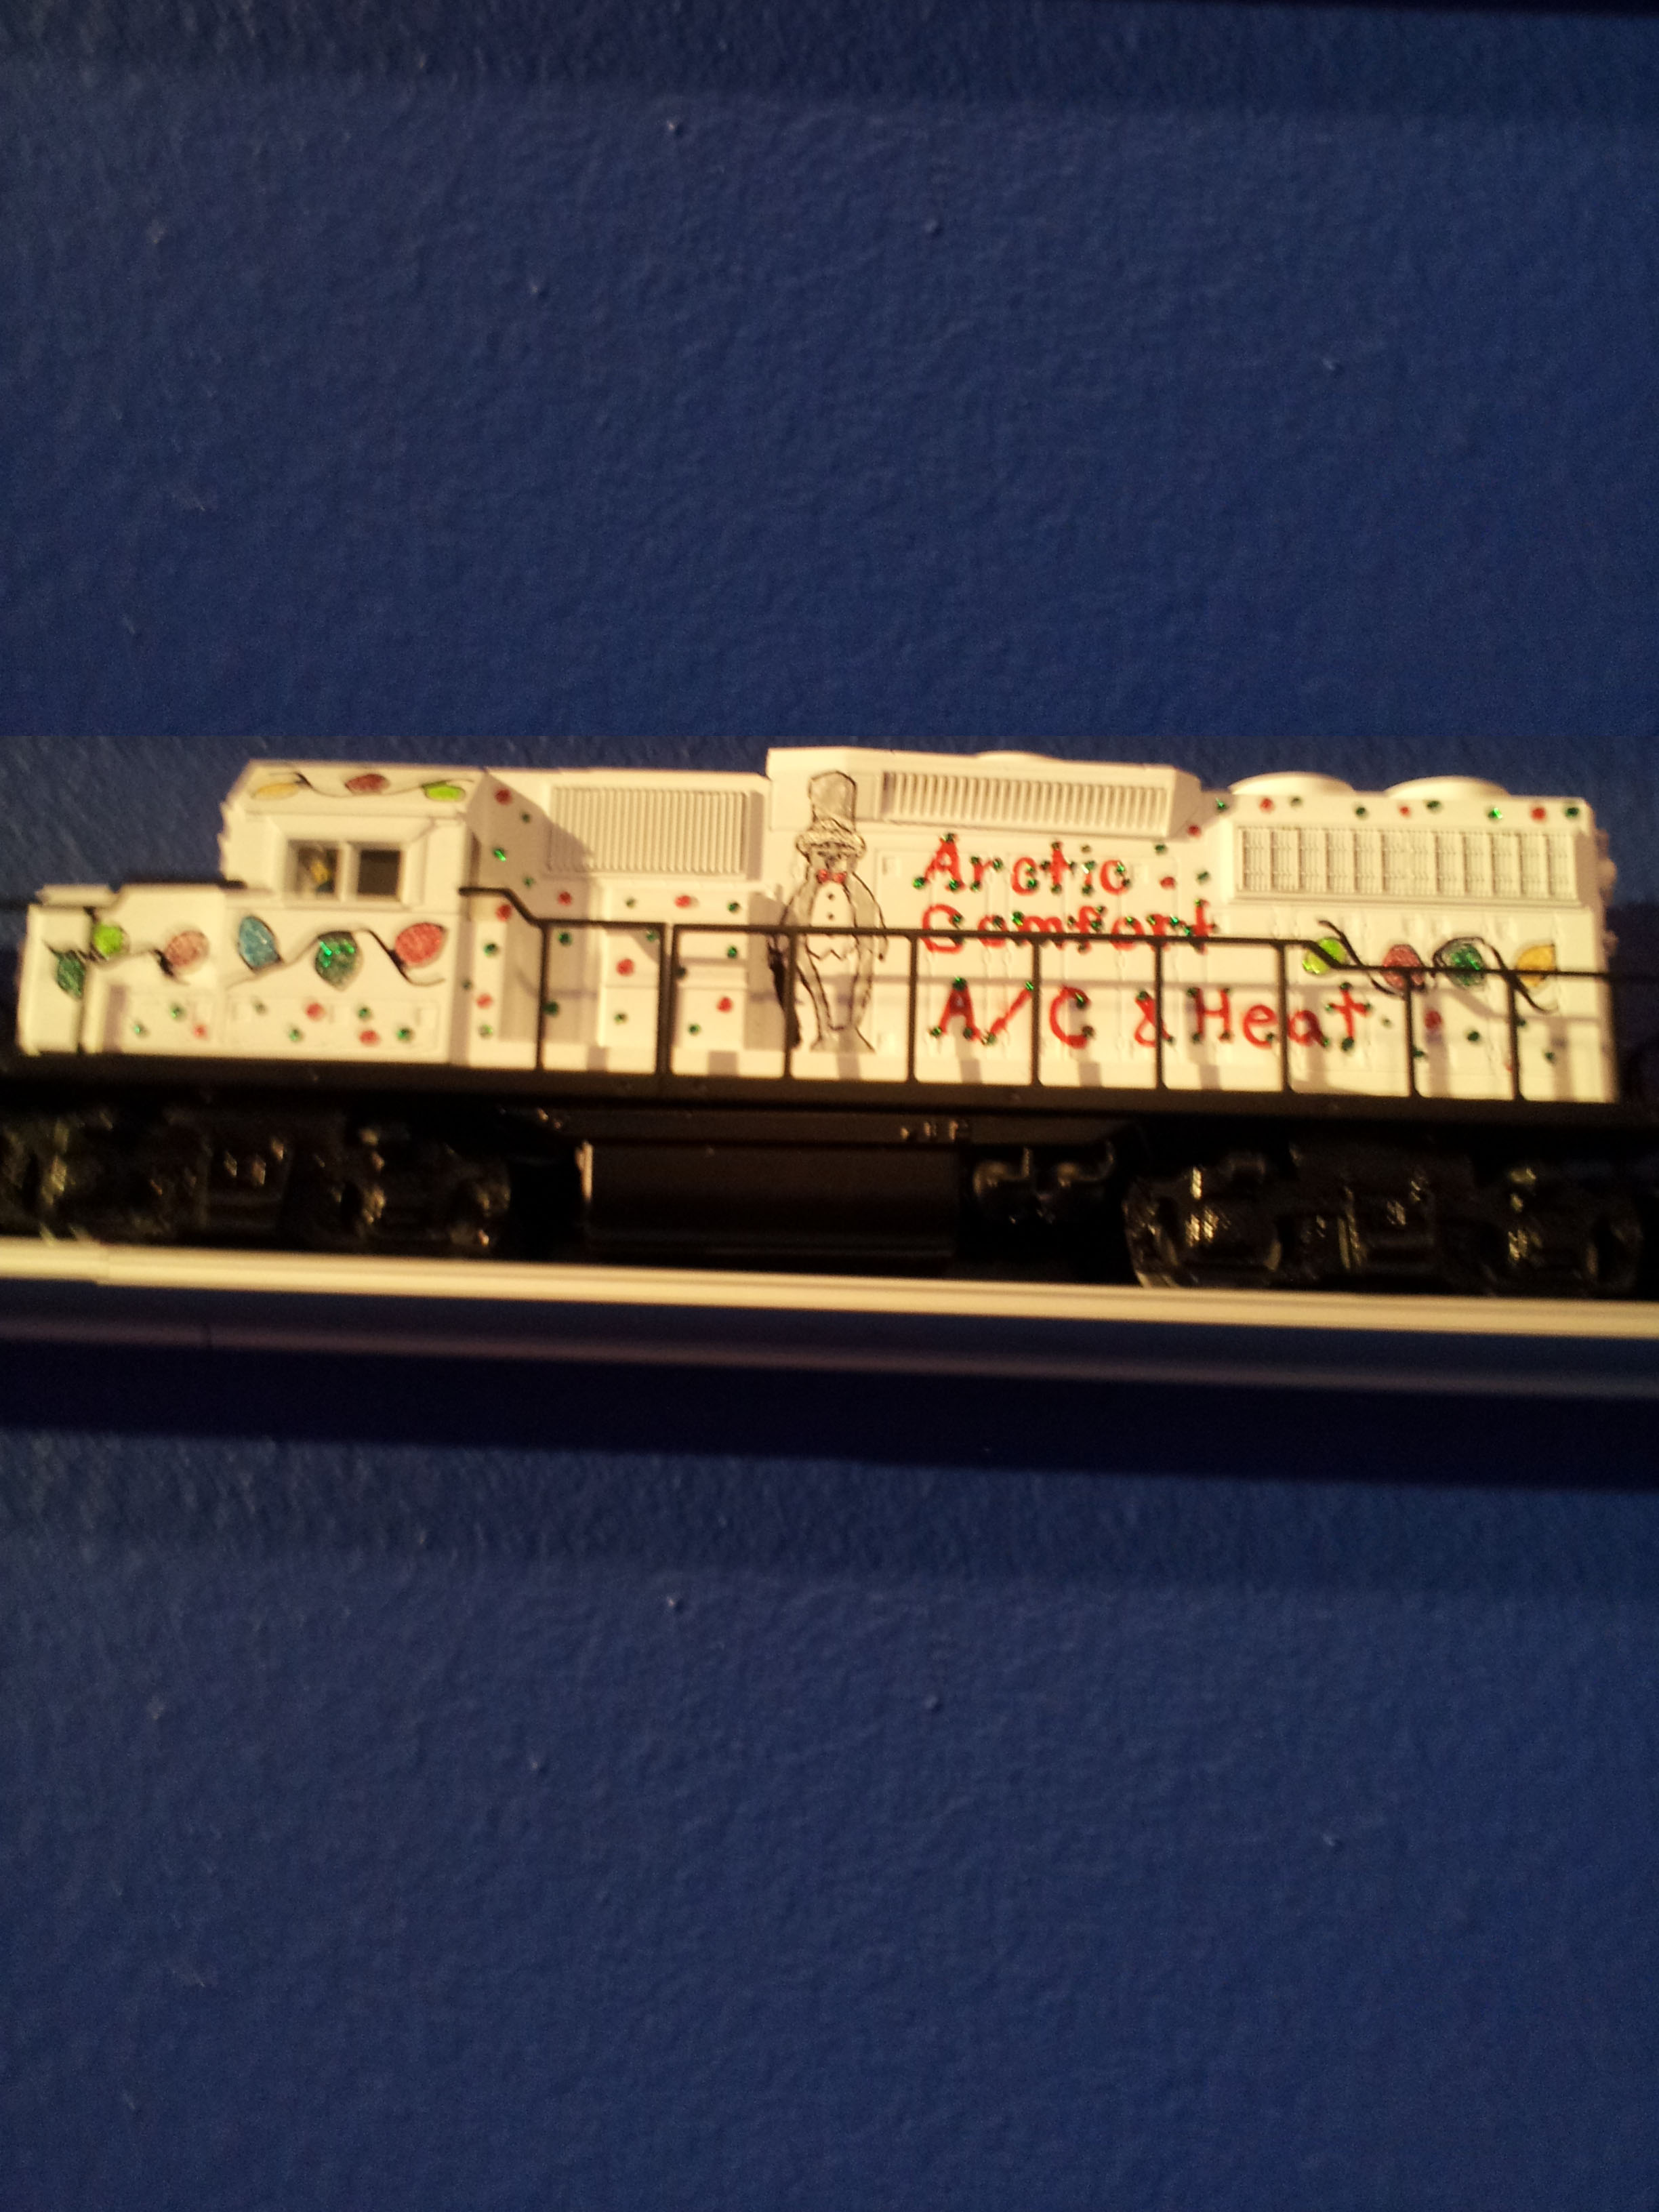 Arctic Comfort Air Conditioning & Heating Garland TX, Our Train to Support the Ronald McDonald House